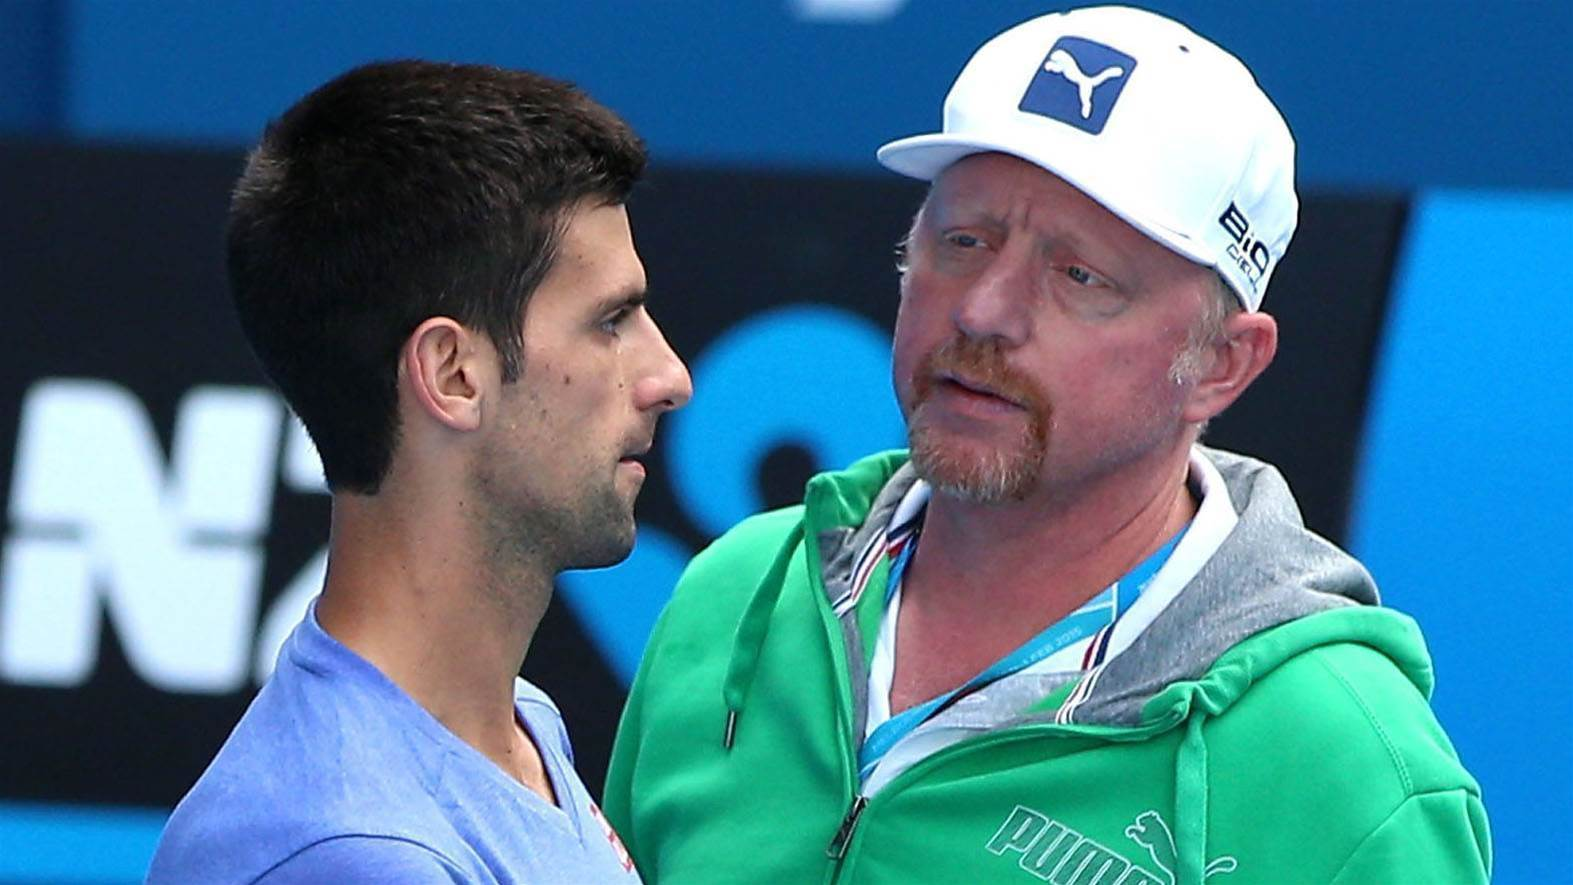 Becker slams Djokovic's Aussie Open exit